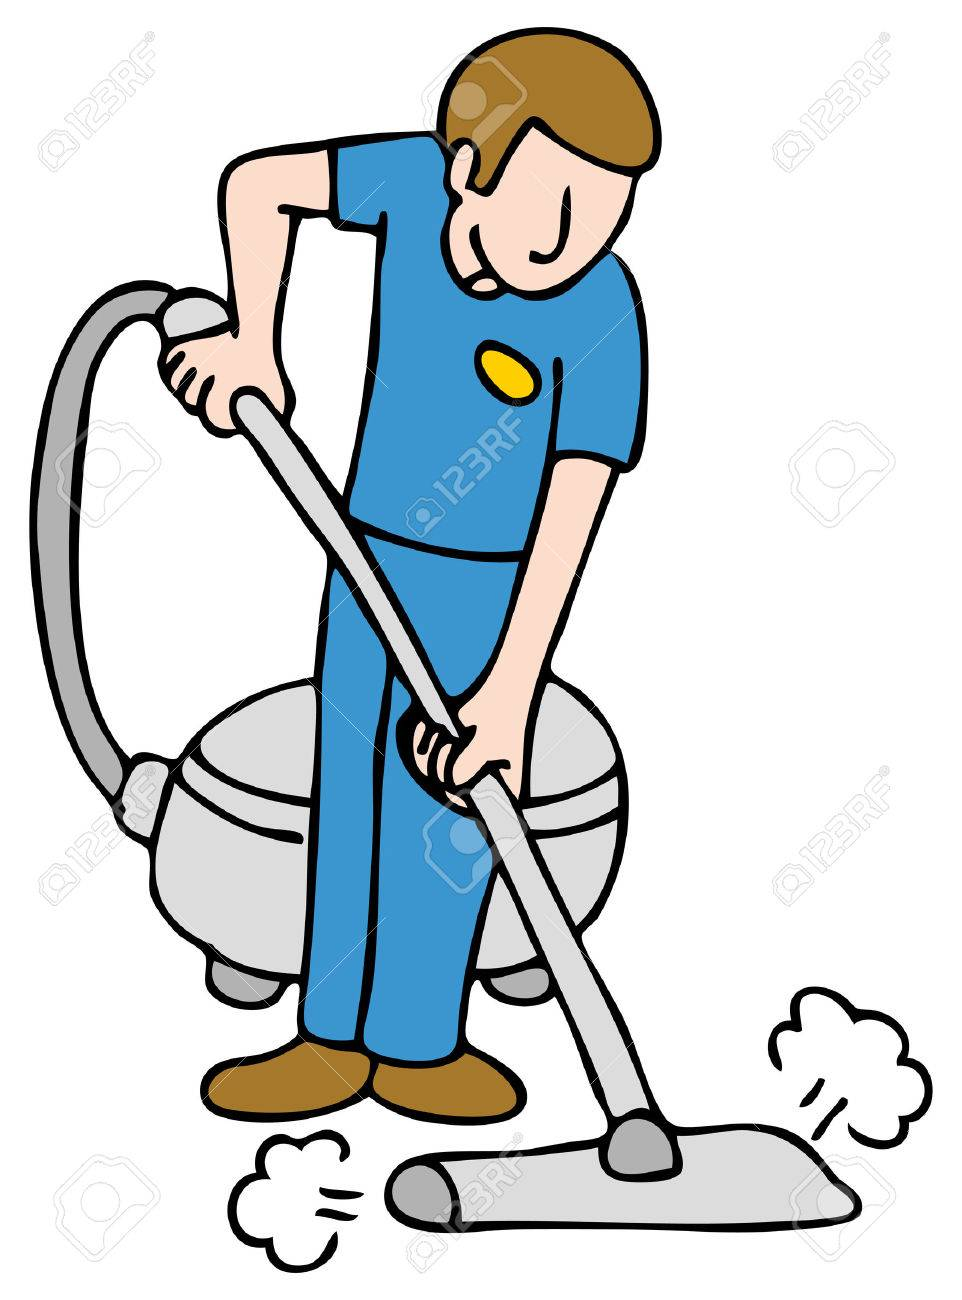 Vacuum cleaner clipart vacuum cleaner clip art - Steam Vacuum Cleaner Clip Art